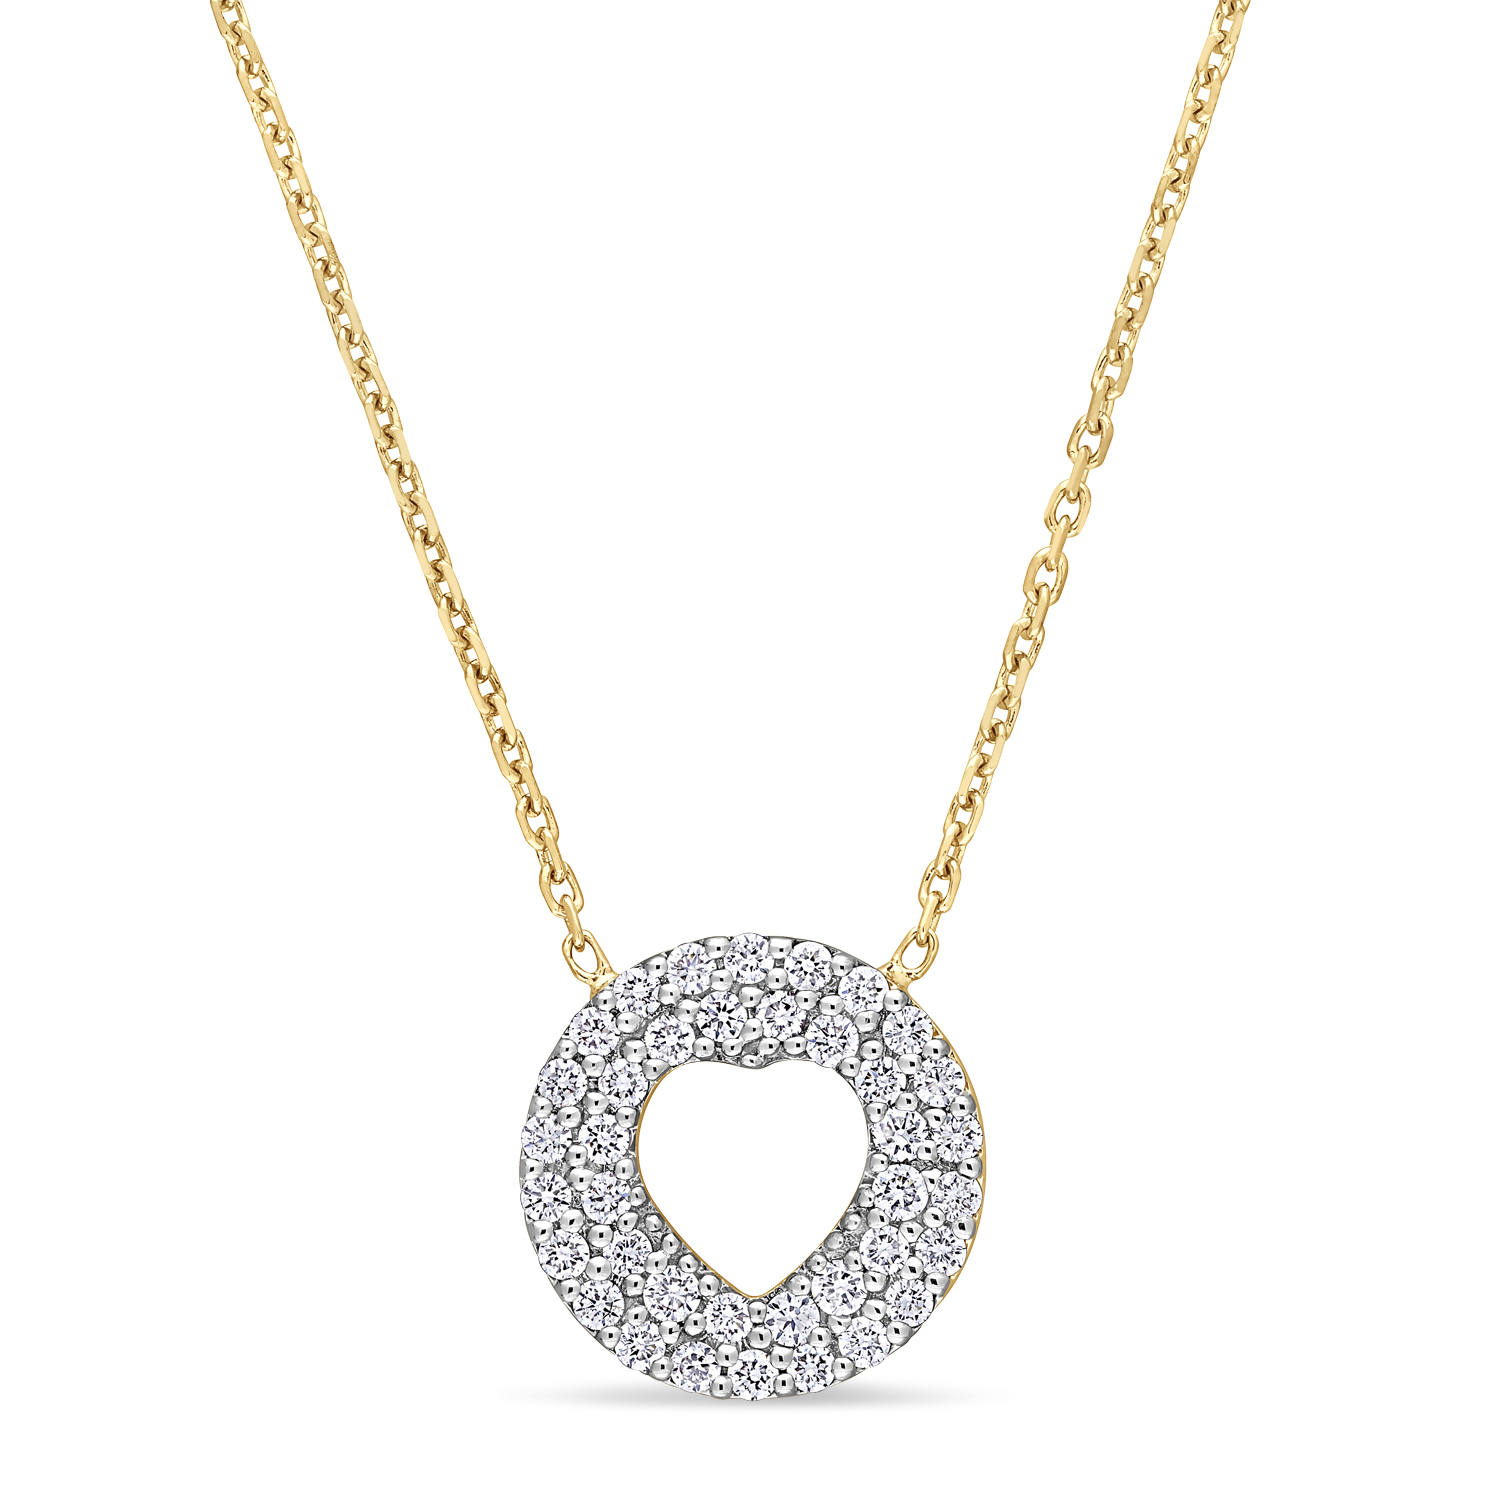 Round Diamond Inverted Heart Pendant Necklace 18k Yellow Gold (0.30 ct)